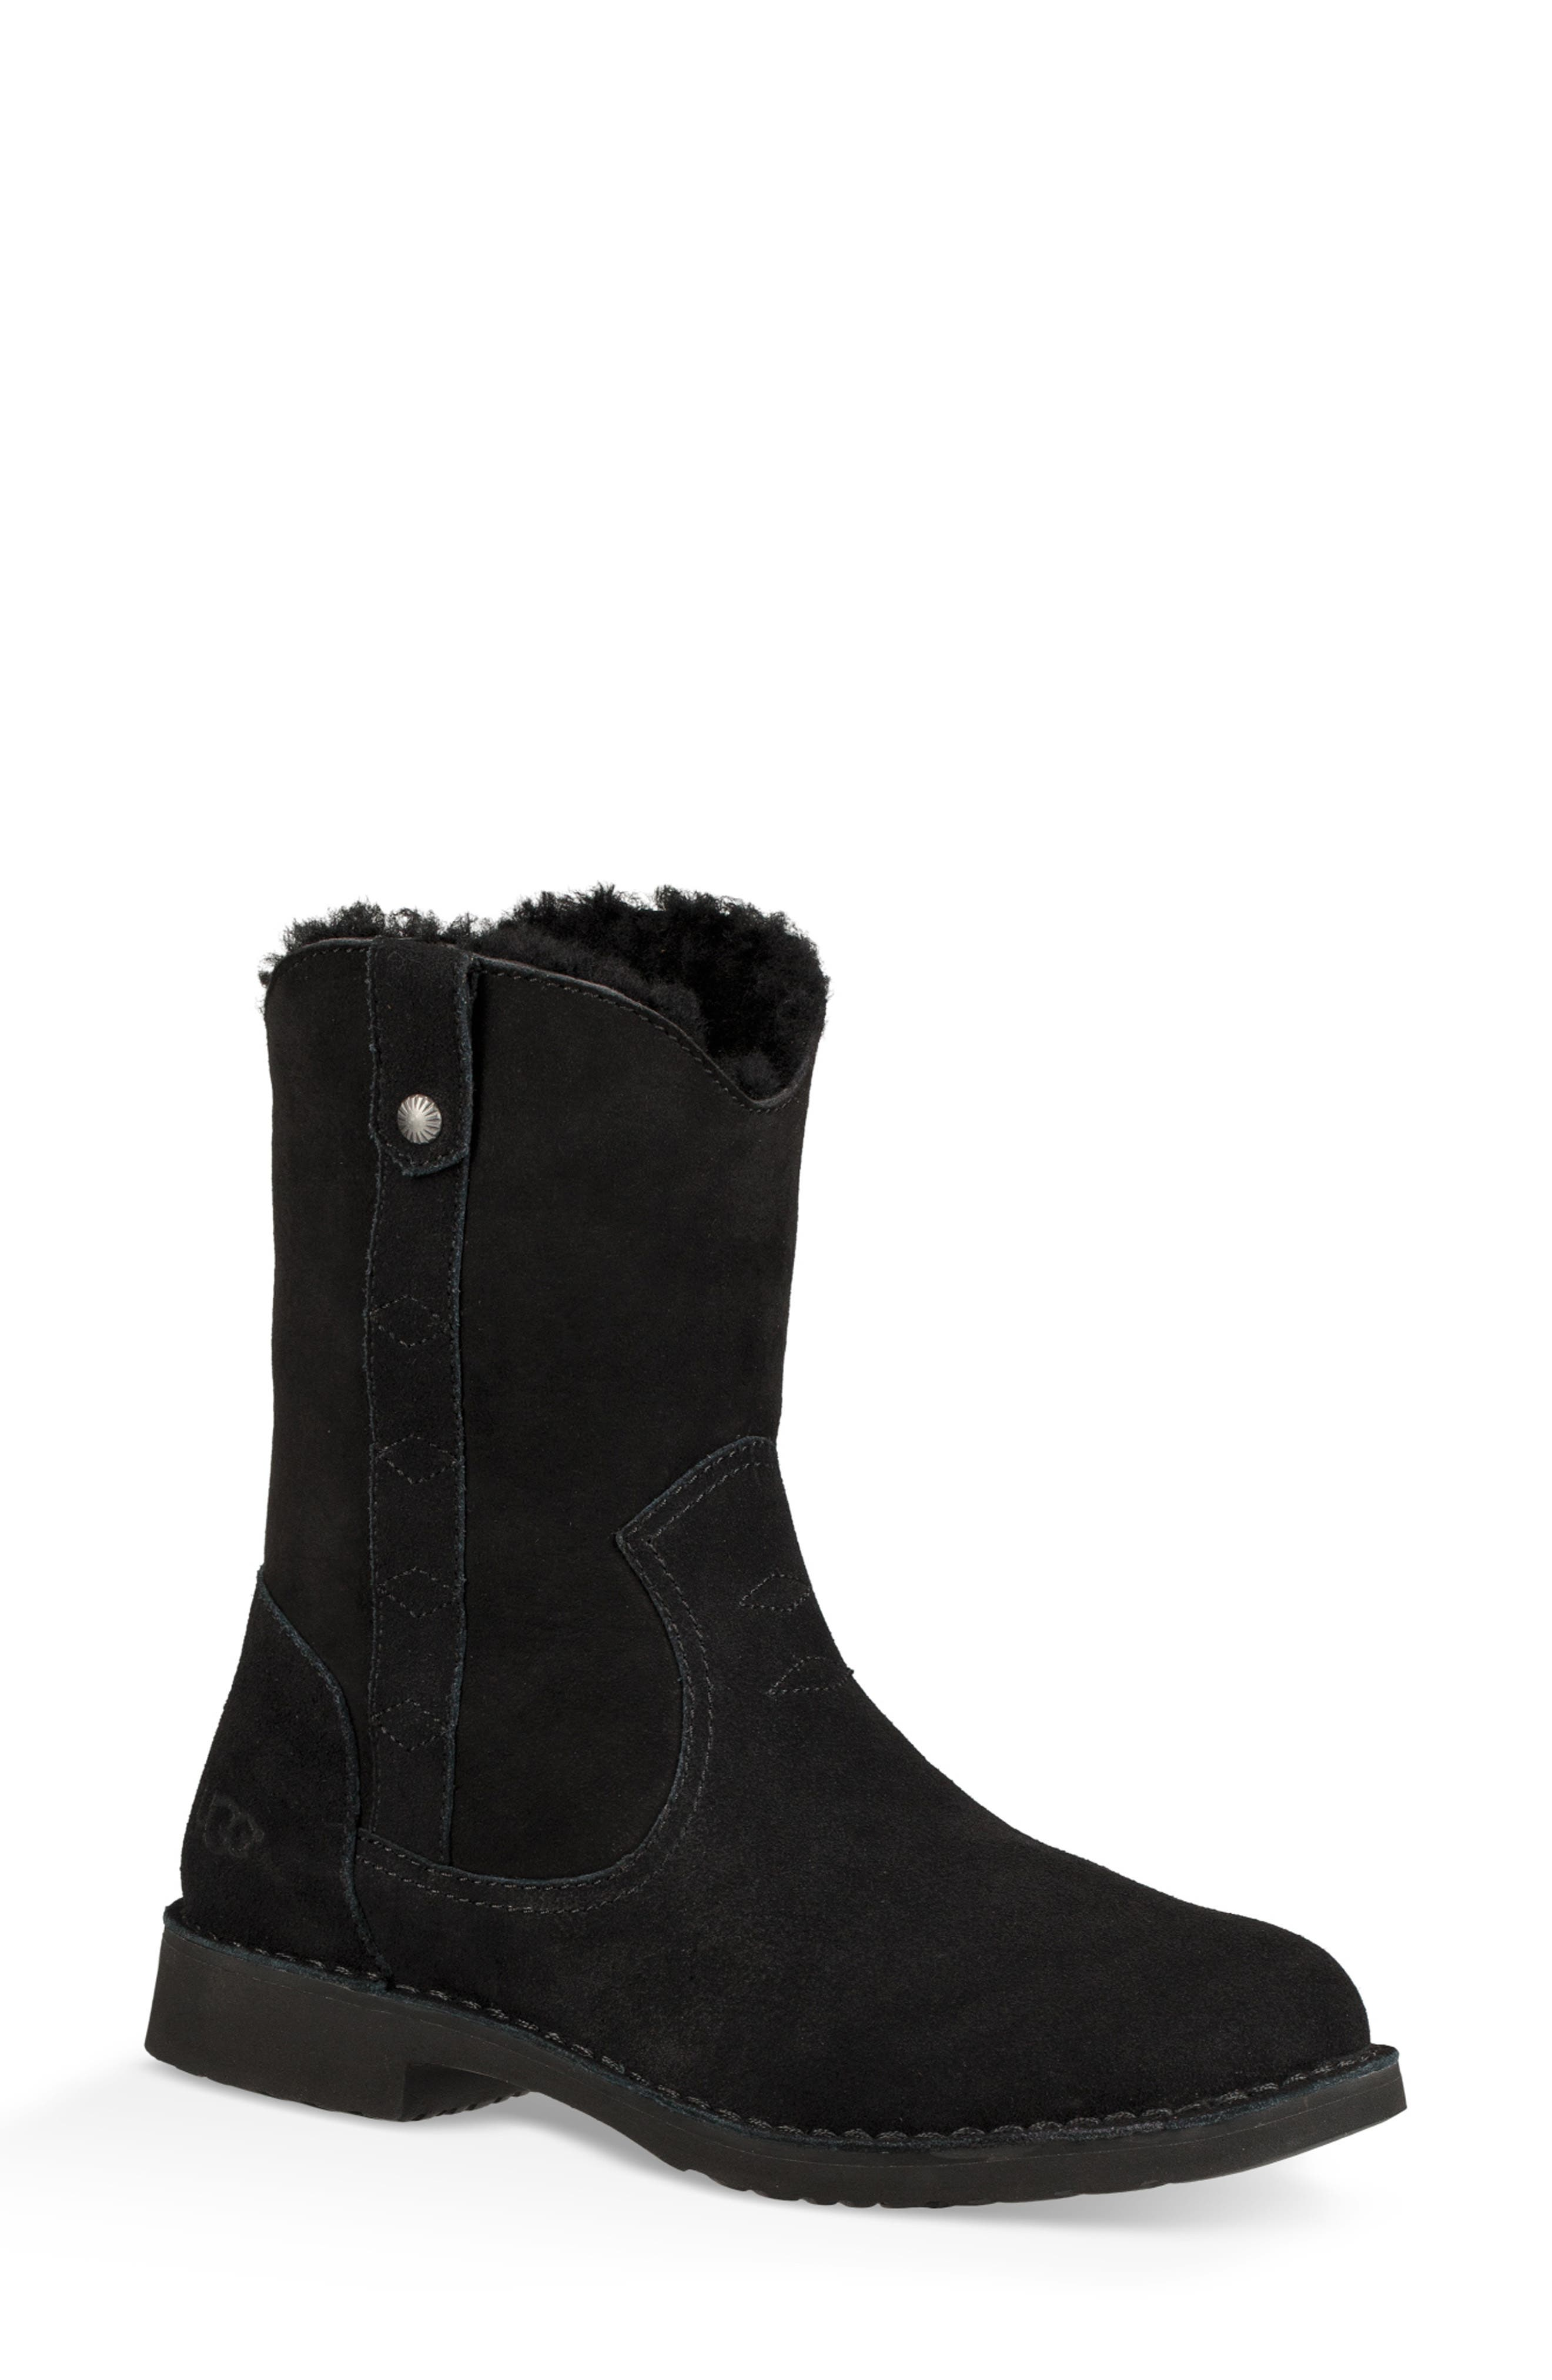 Larker Boot,                         Main,                         color, BLACK SUEDE